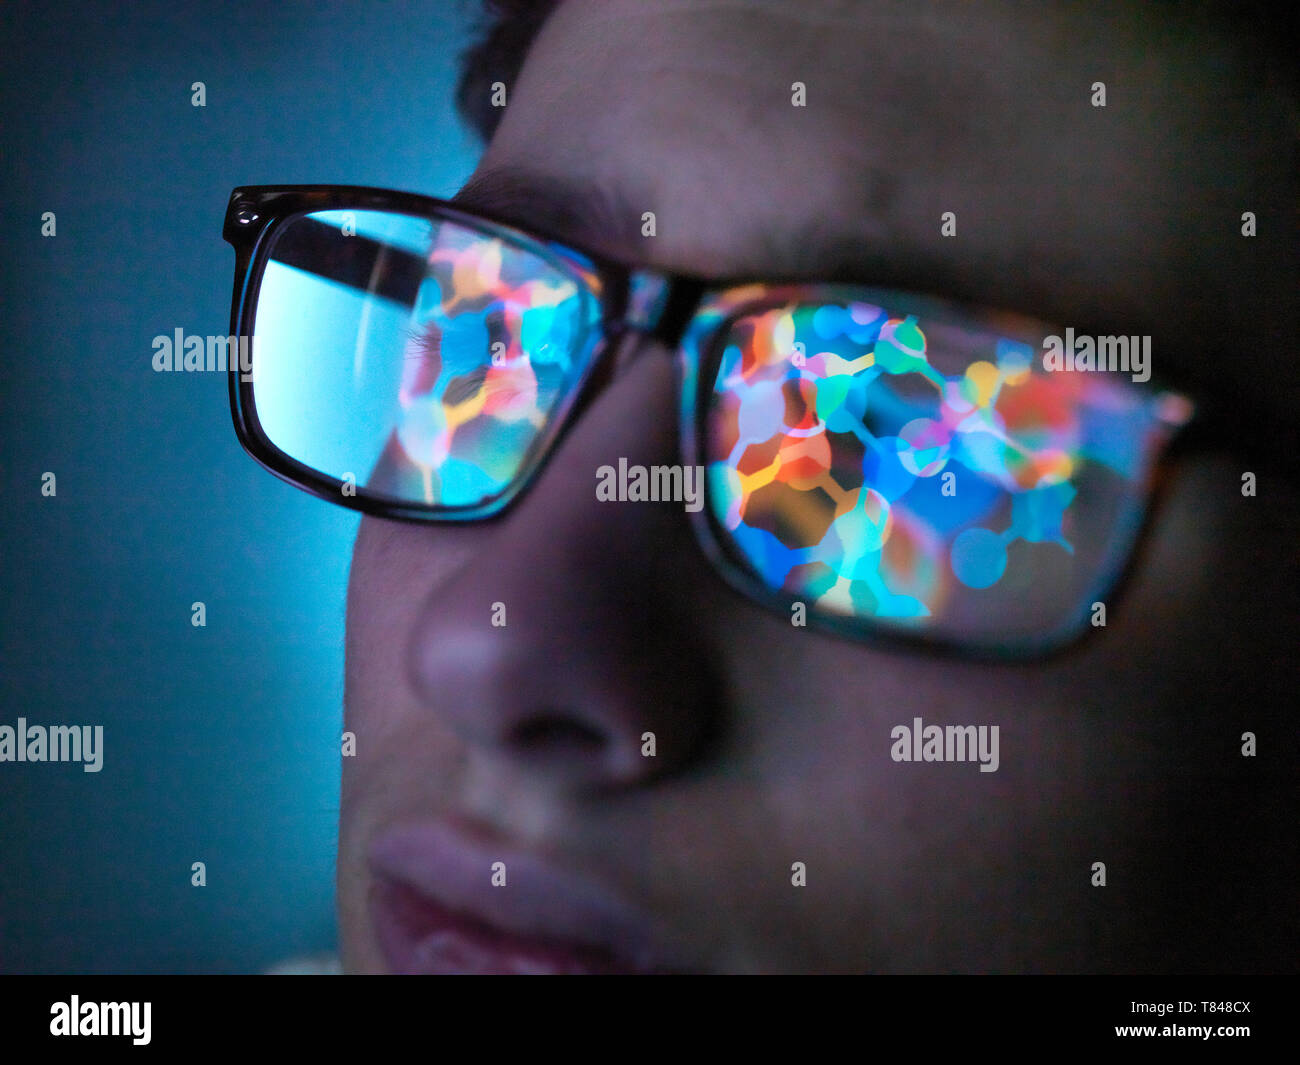 Biotechnology research, computer screen reflection in spectacles of new molecular formula in laboratory, close up of face - Stock Image